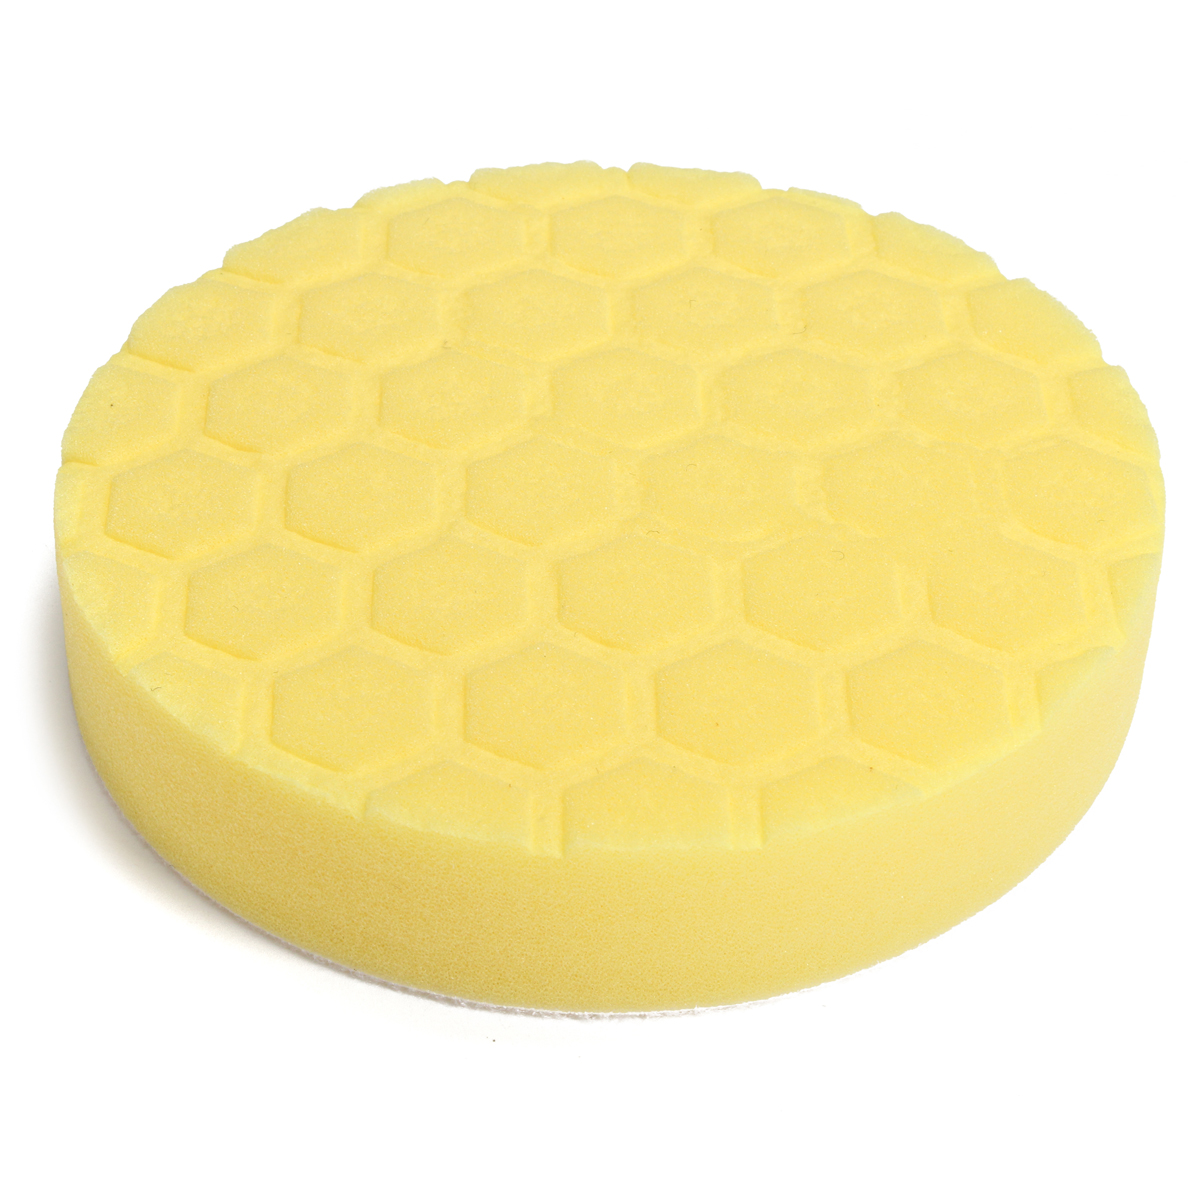 6 Inch 150mm Hex Logic Polishing Pad Buff Padkit For Car